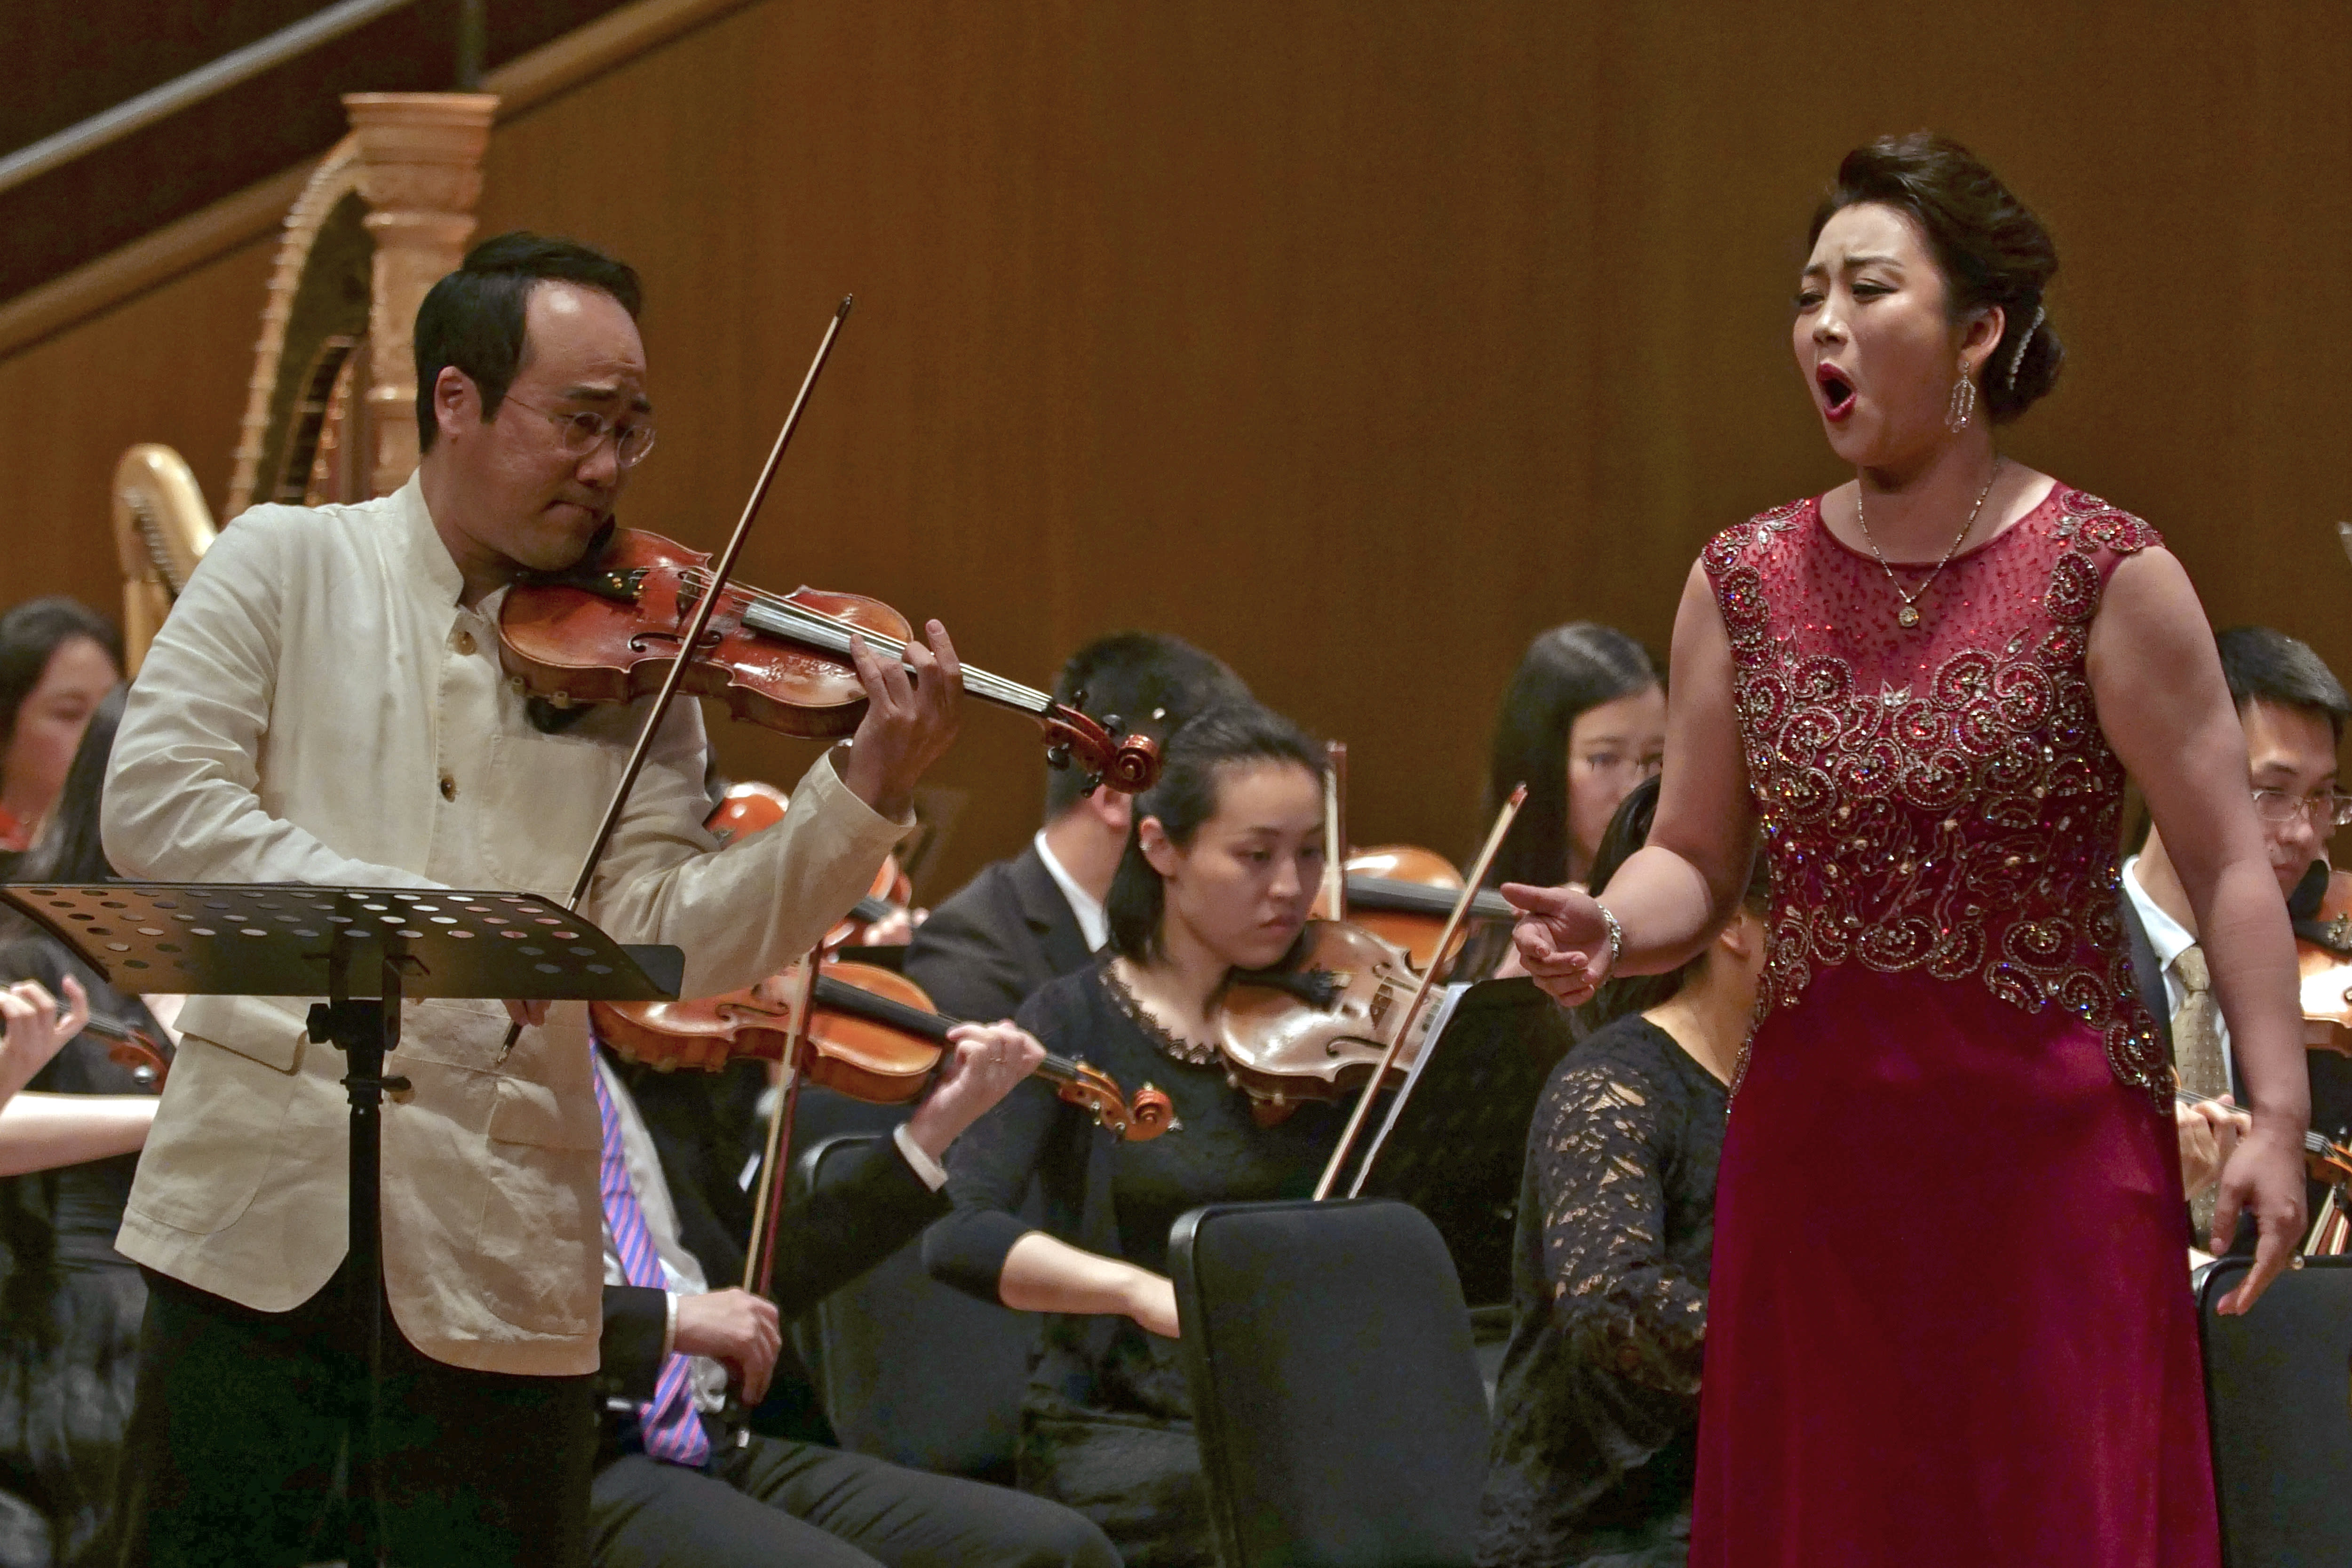 In this Sunday, May 12, 2019, file photo, South Korean violinist Won Hyung Joon and his North Korean soprano partner Kim Song Mi perform at the Shanghai Oriental Arts Center in Shanghai. Won, a South Korean, performed together with Kim, a North Korean, in a rare joint performance they hope would help bring the divided Koreas closer together via music. Their performance comes three days after North Korea fired two suspected short-range missiles in the second such weapons test in five days. (AP Photo/Dake Kang, File)